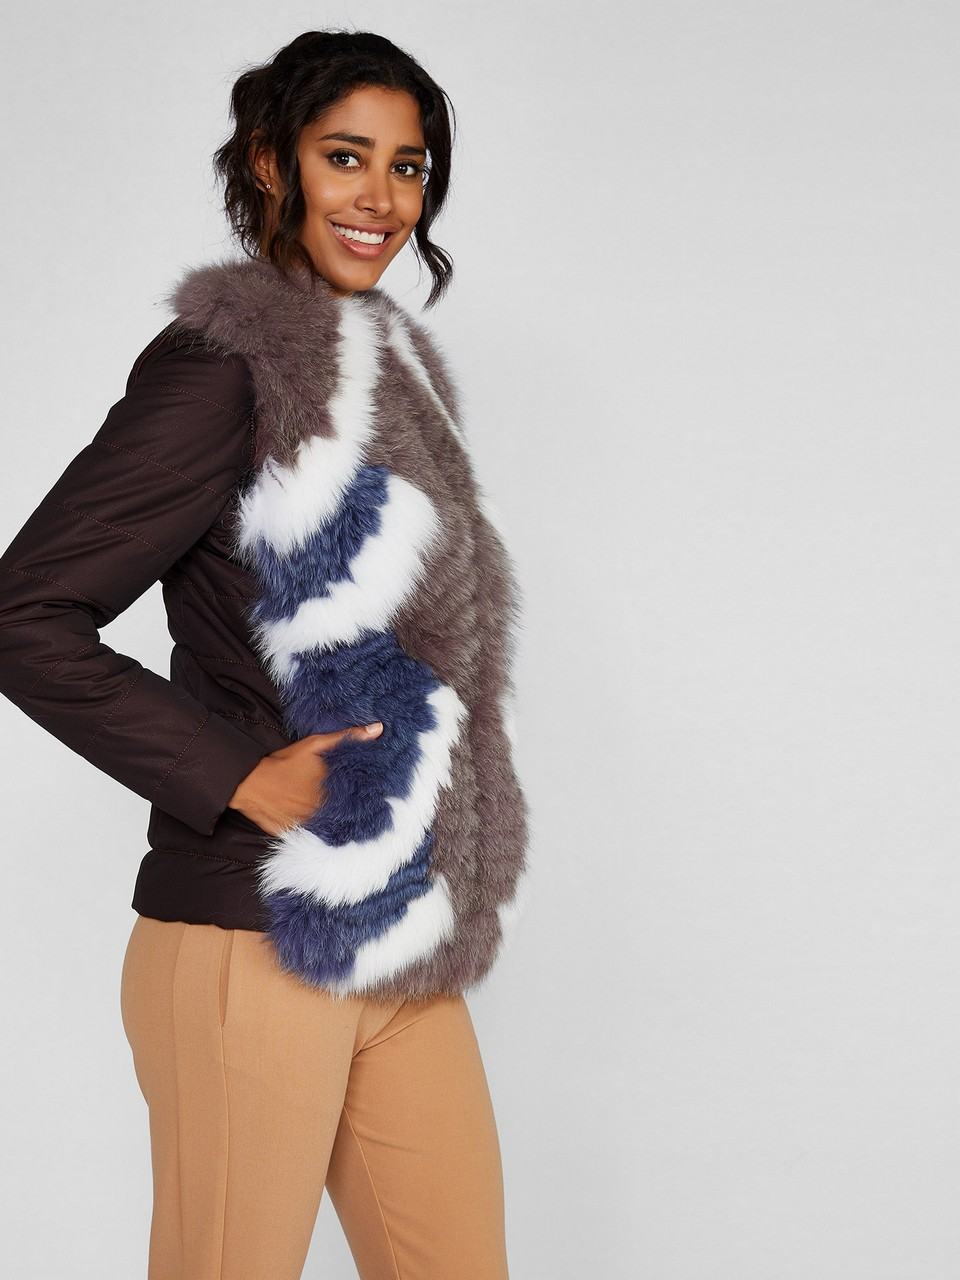 Removable Sleeve Puffer Coat With Fur